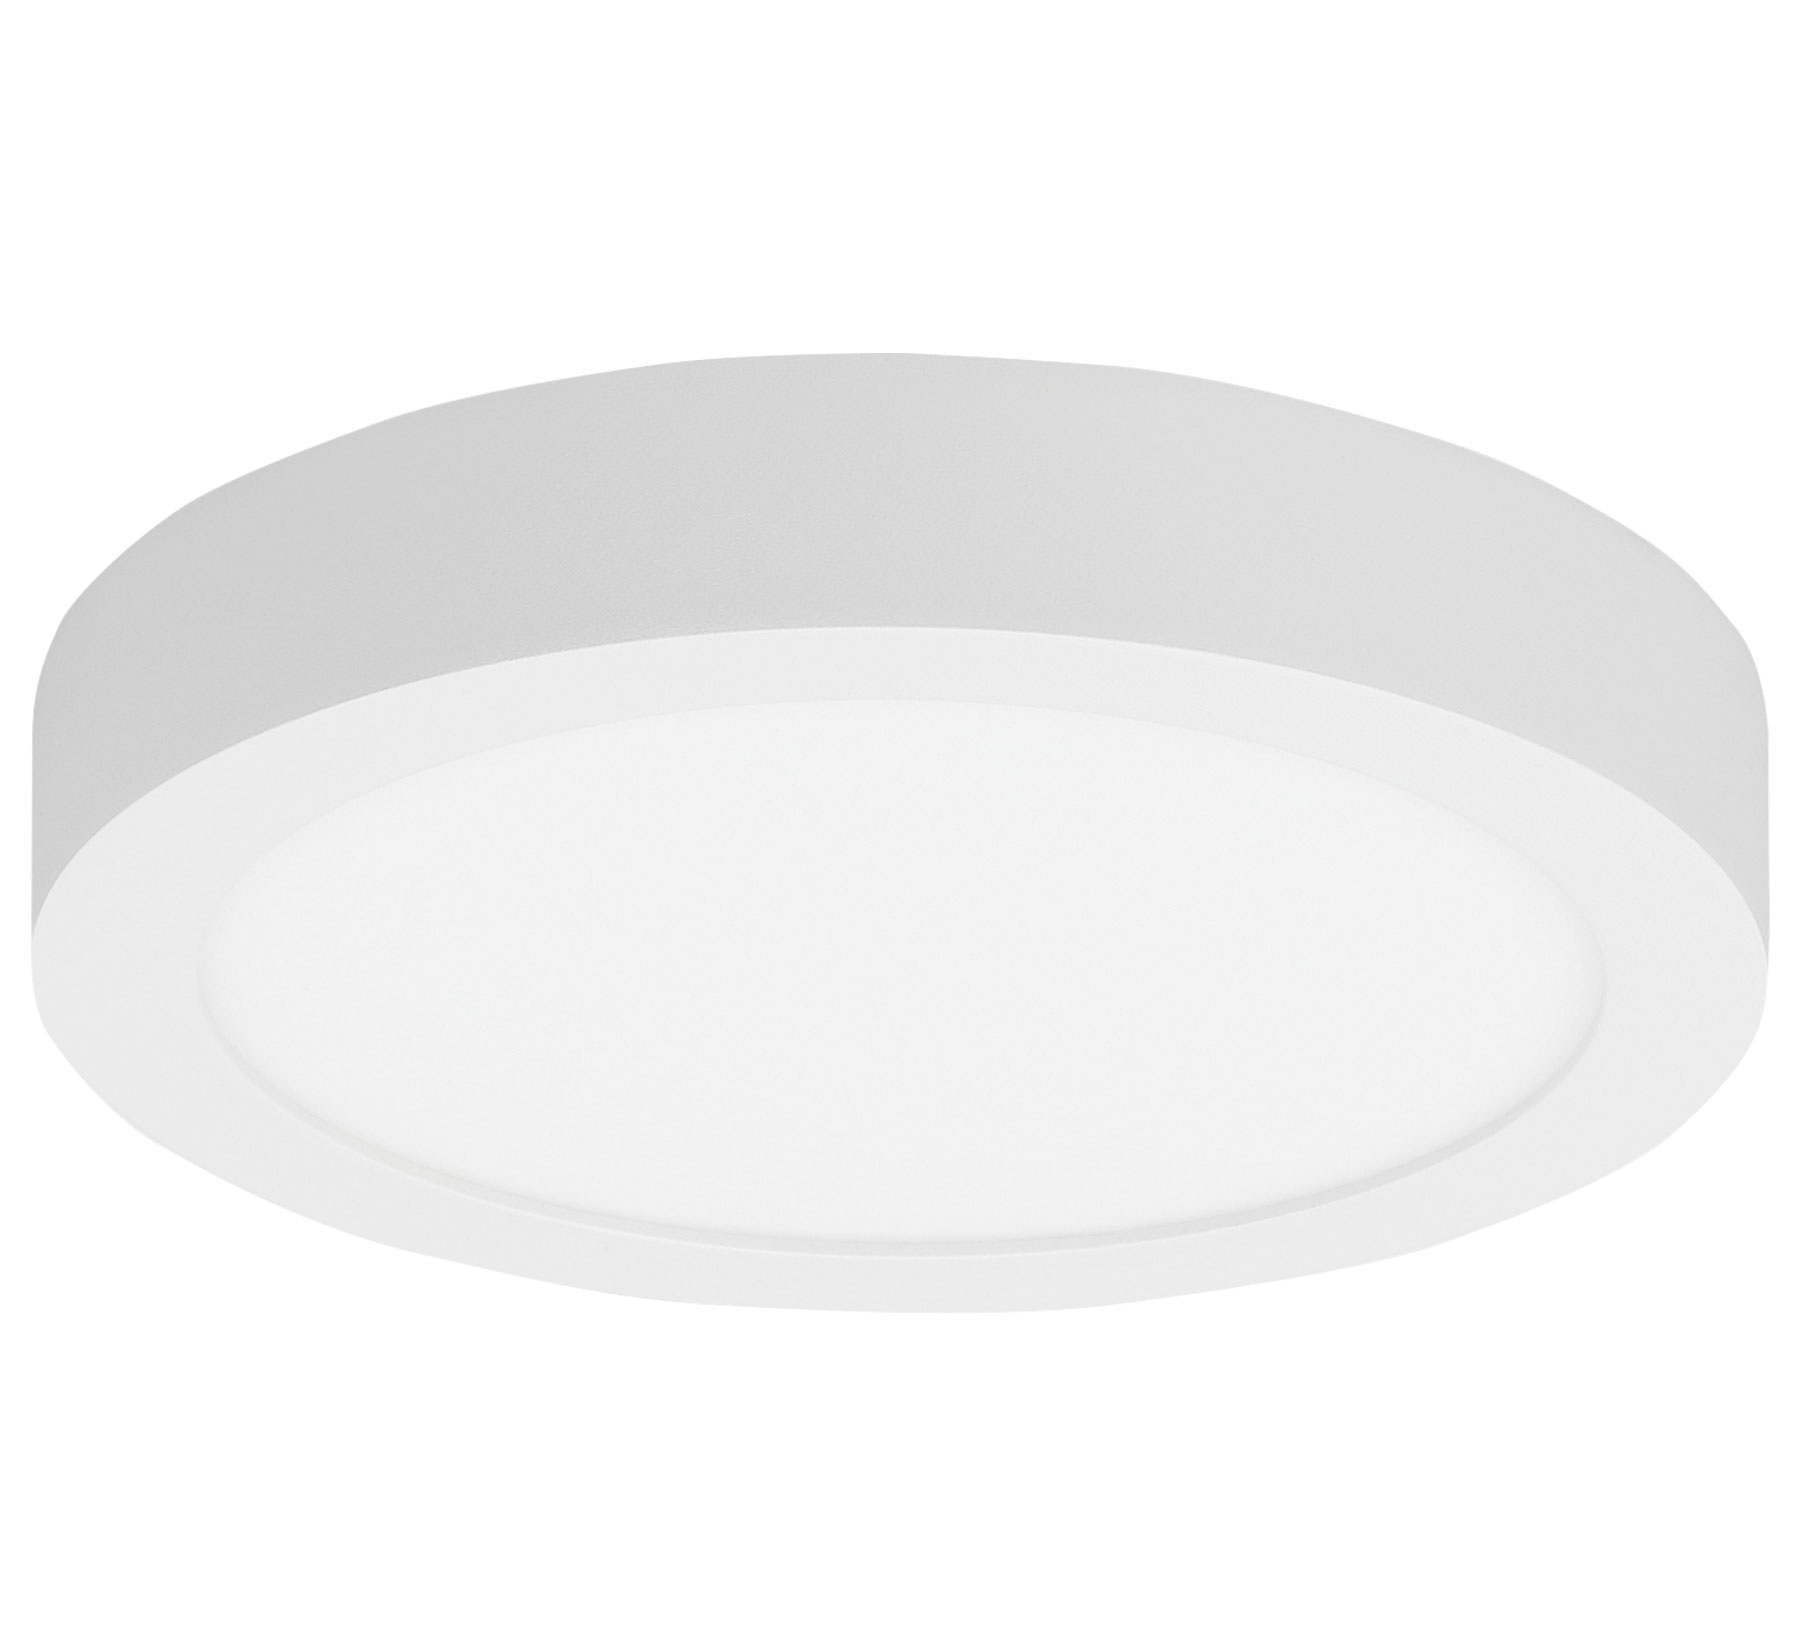 Tenur Round Ceiling Light Fixture by LBL Lighting | FM925OYWHLED930